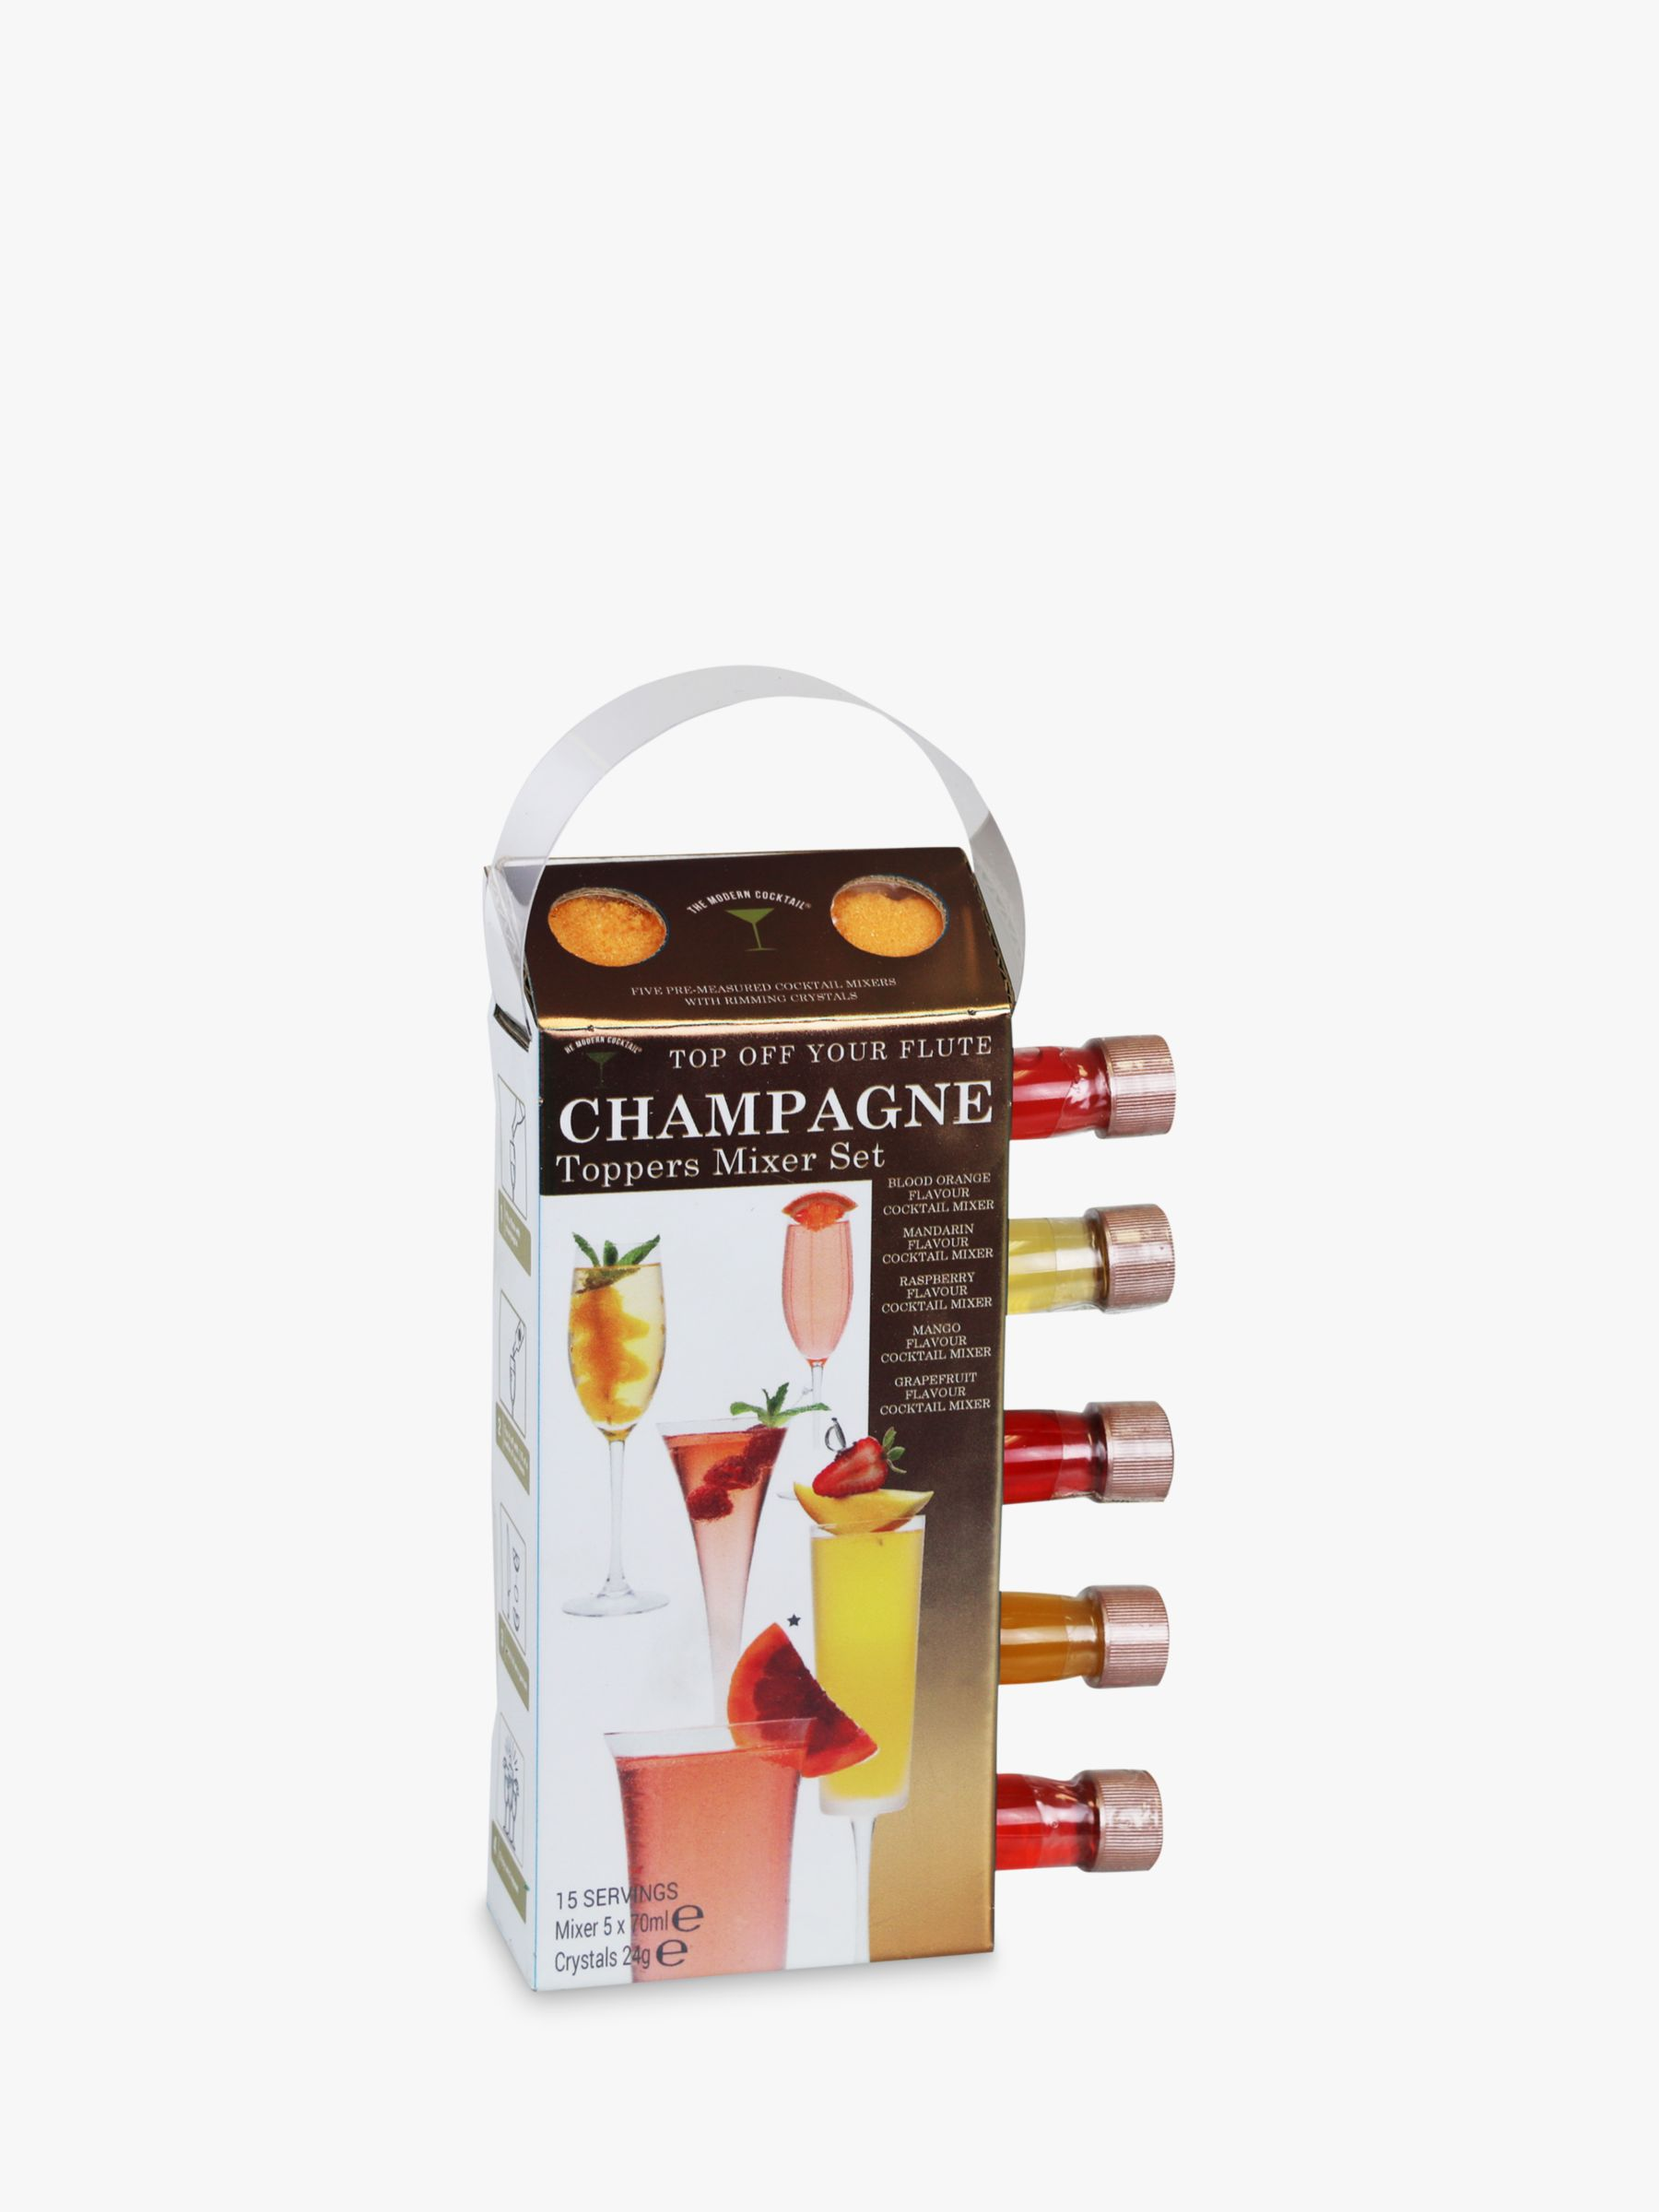 The Modern Cocktail The Modern Cocktail Champagne Mixers, Pack of 5